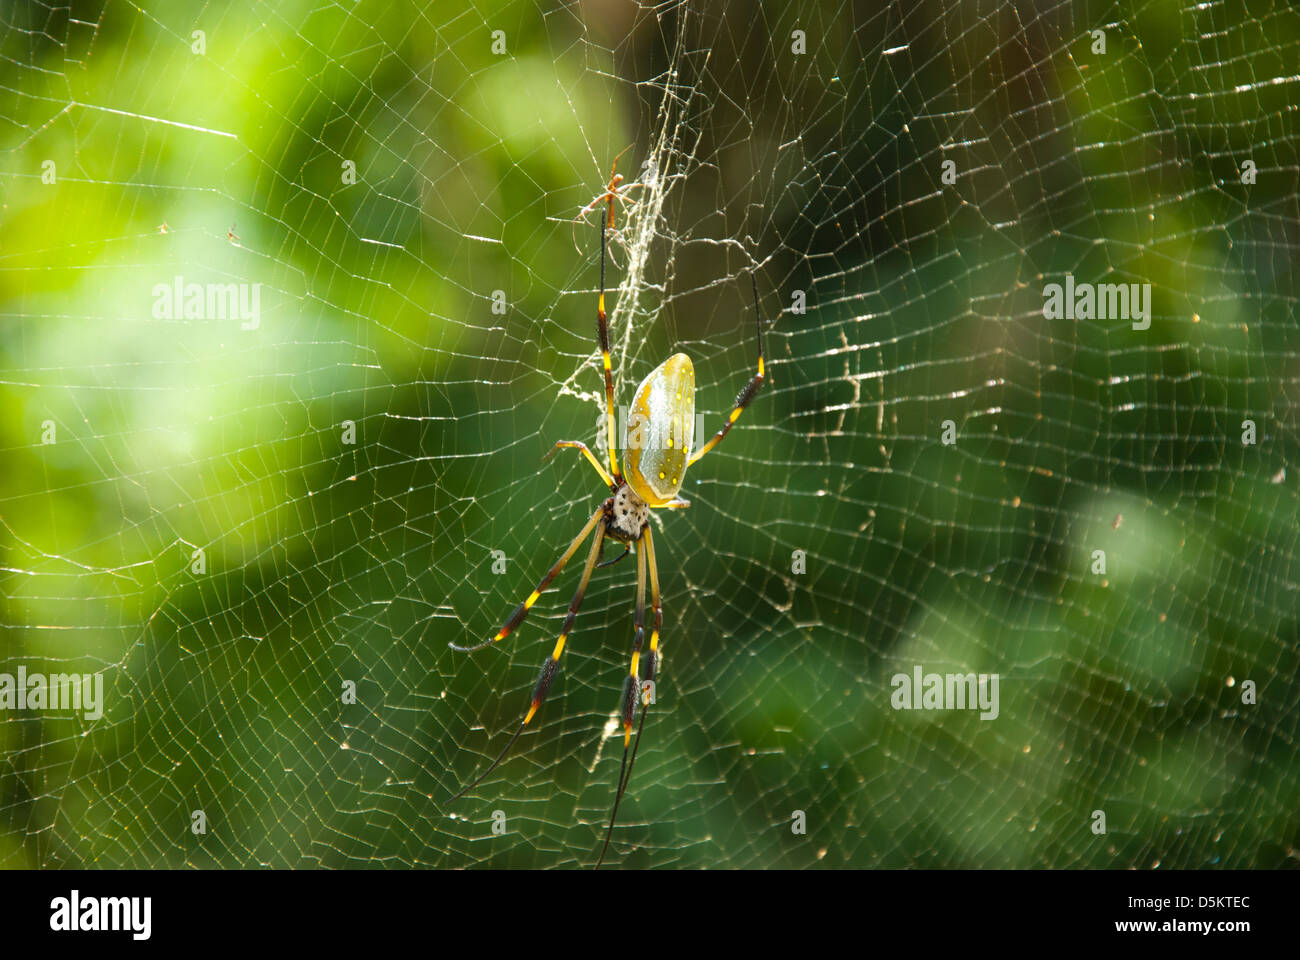 Golden Orb spider (Nephila clavipes) in web - Stock Image